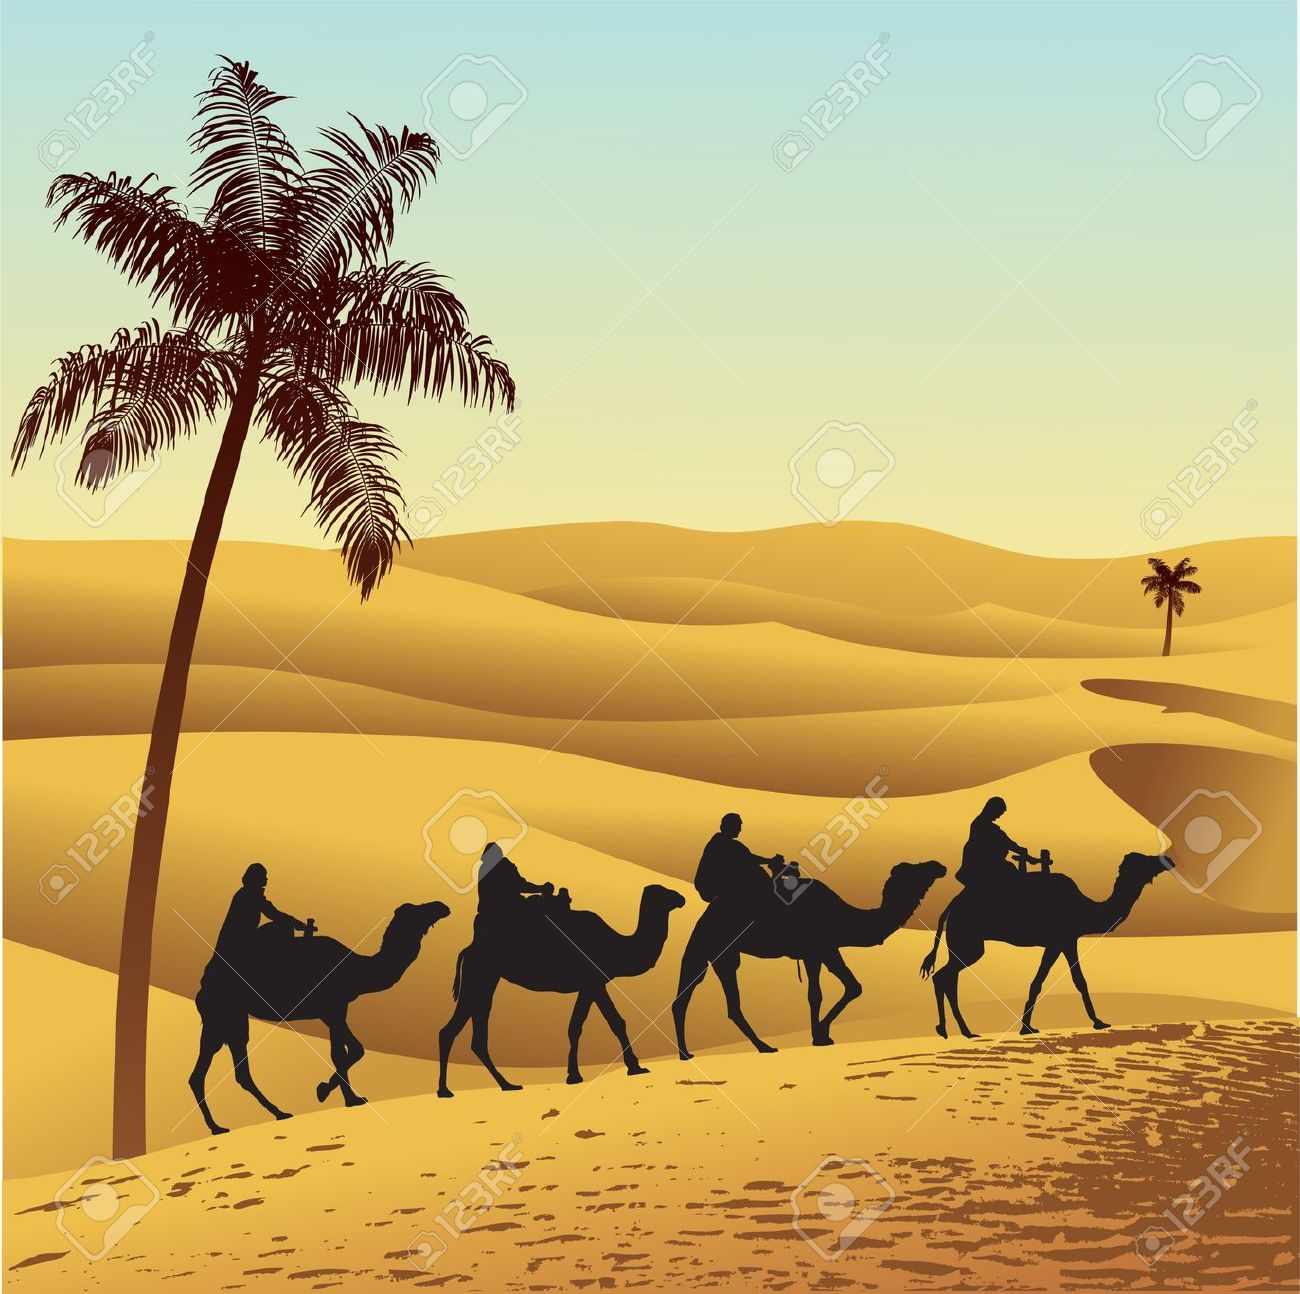 Arab clipart desert camel Sahara collection Animated Clipart Clipart